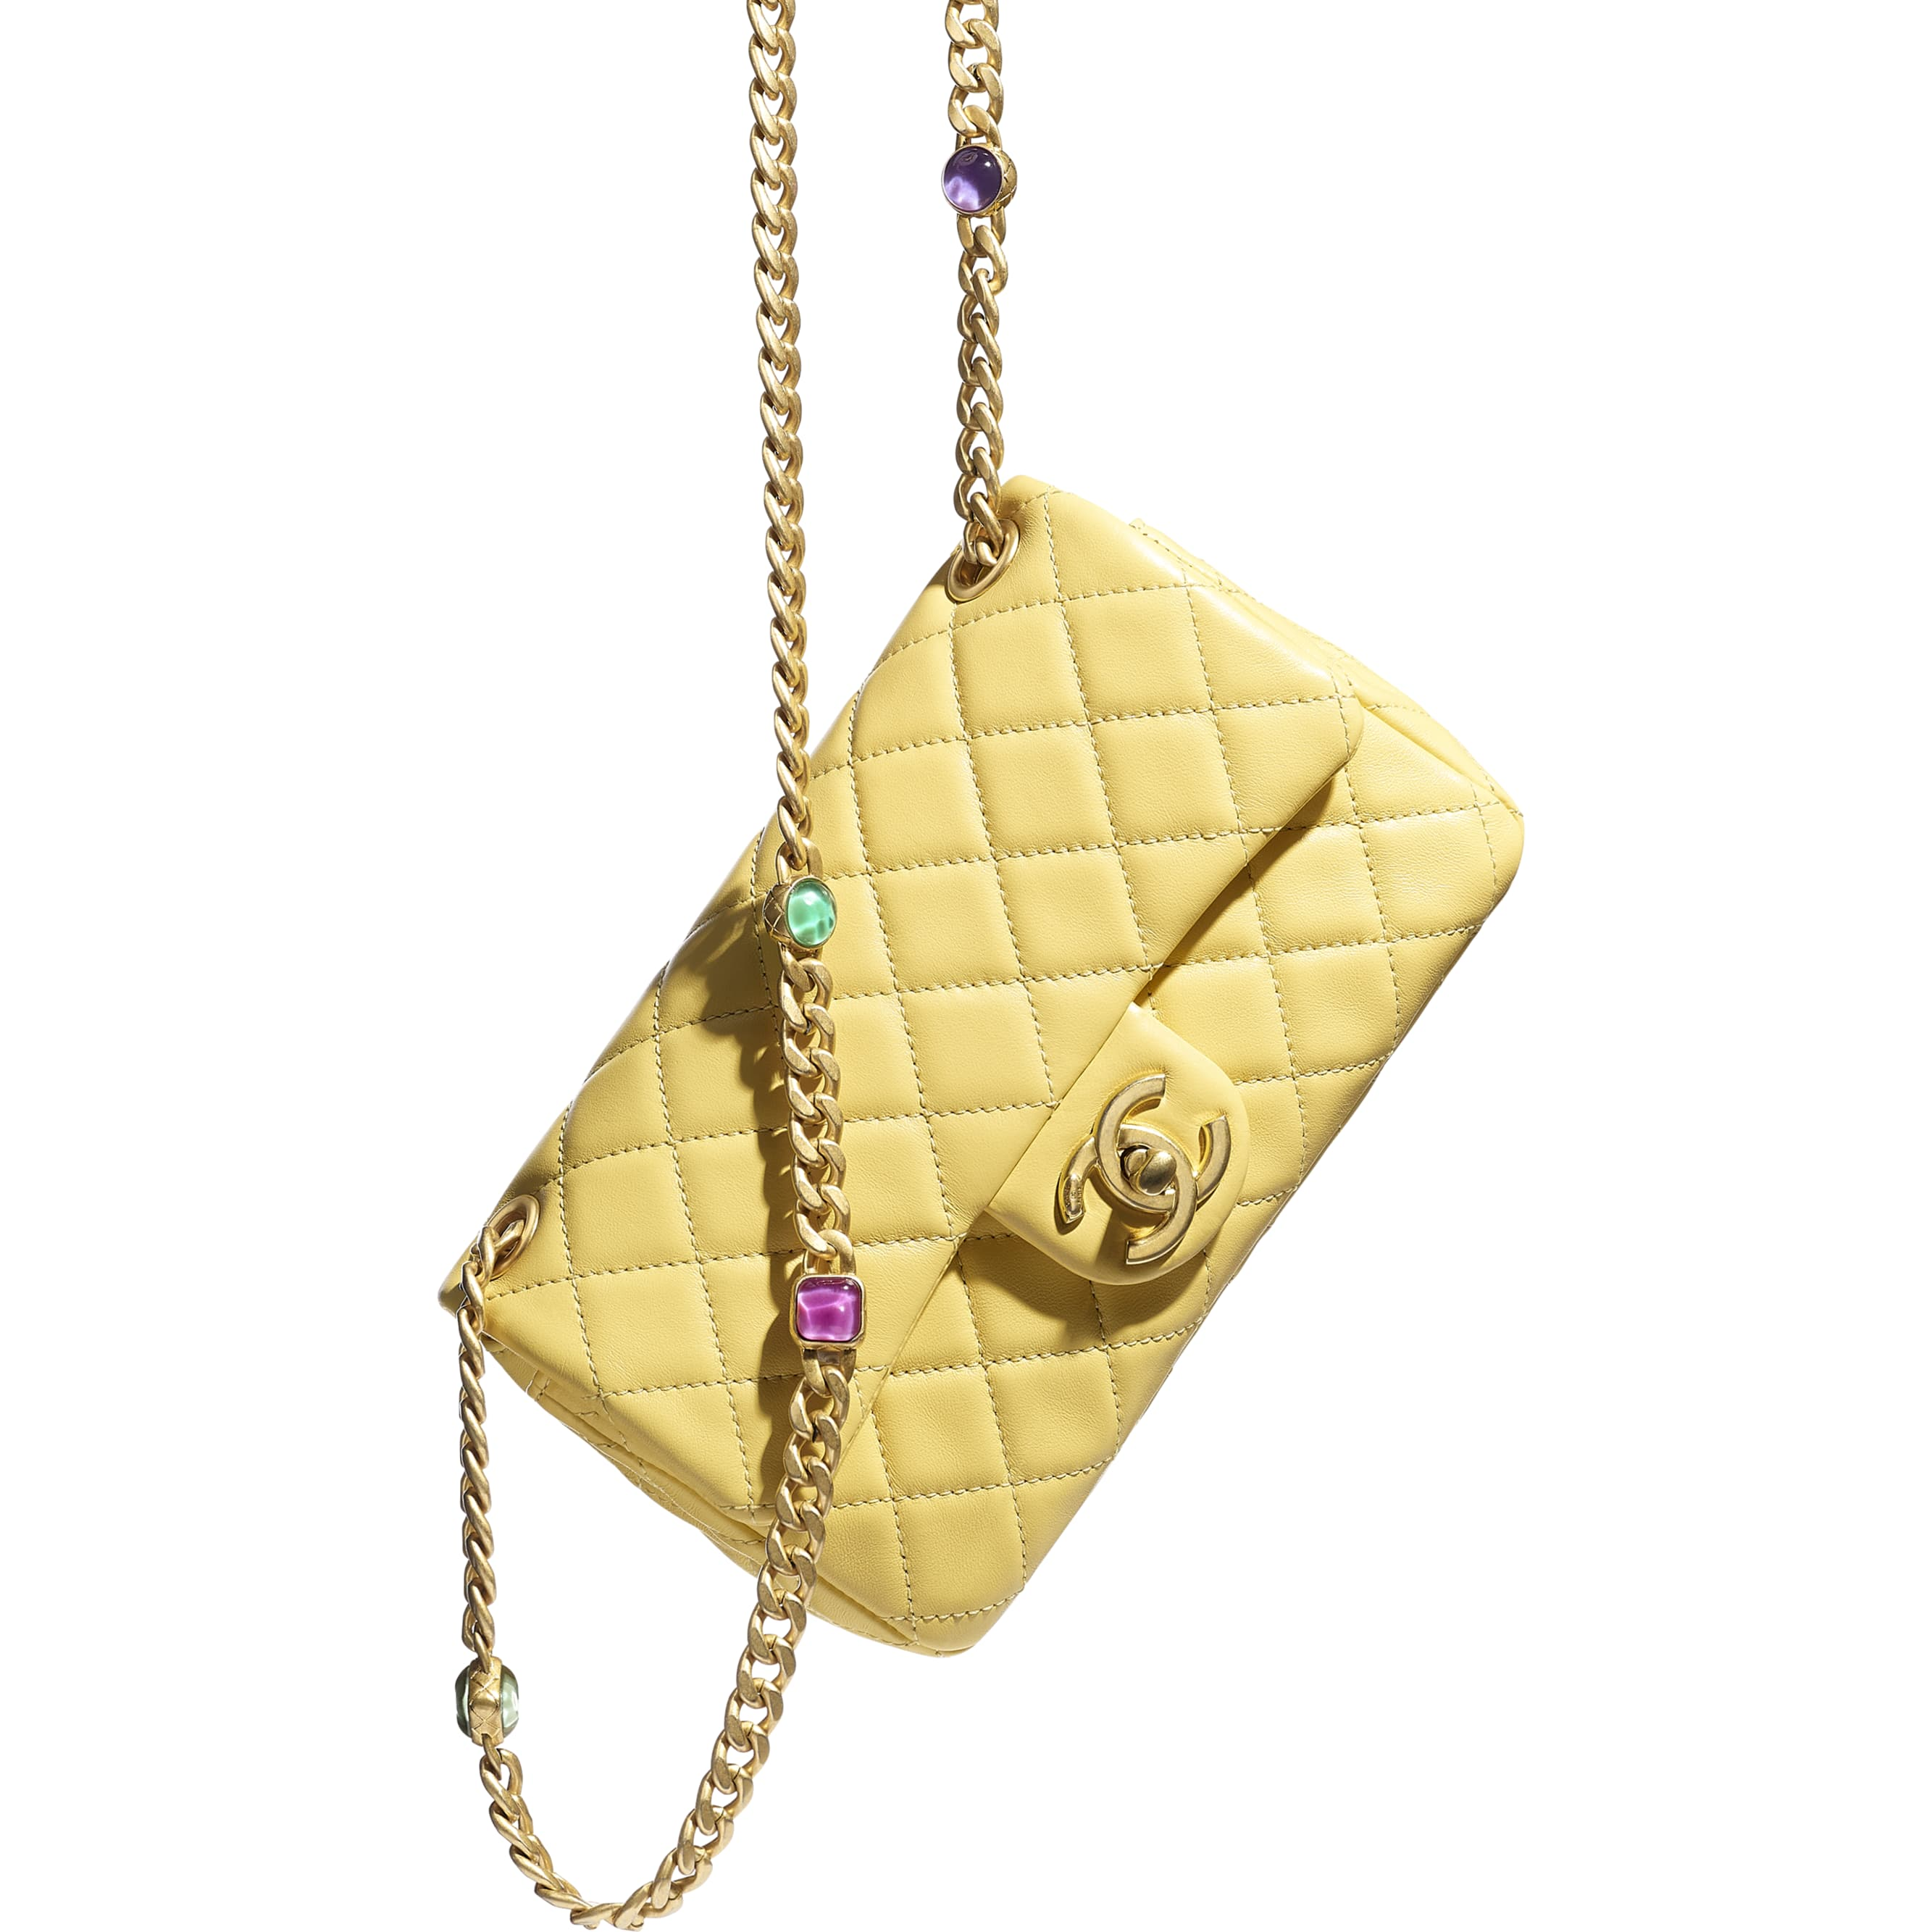 Flap Bag - Yellow - Lambskin, Resin & Gold-Tone Metal - CHANEL - Extra view - see standard sized version